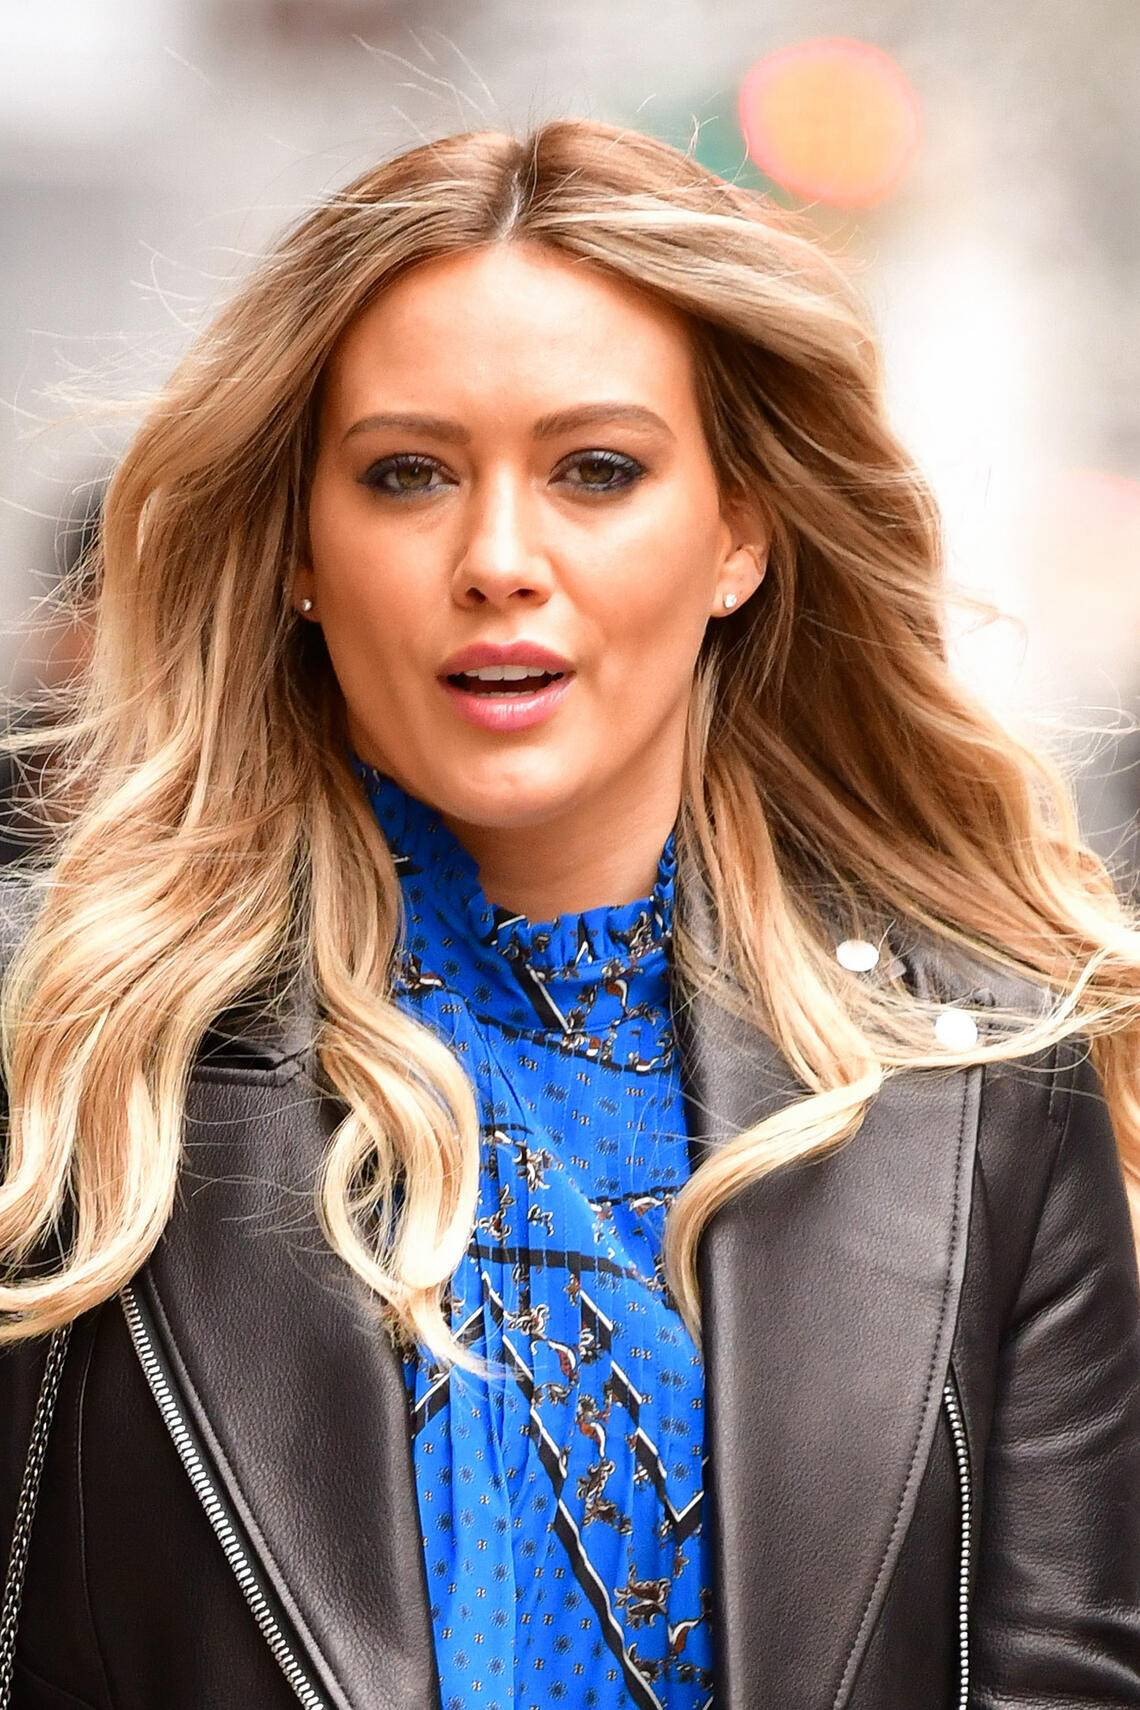 NEW YORK, NY - APRIL 09:  Hilary Duff seen on the set of 'Younger' on April 9, 2019 in New York City.  (Photo by James Devaney/GC Images)